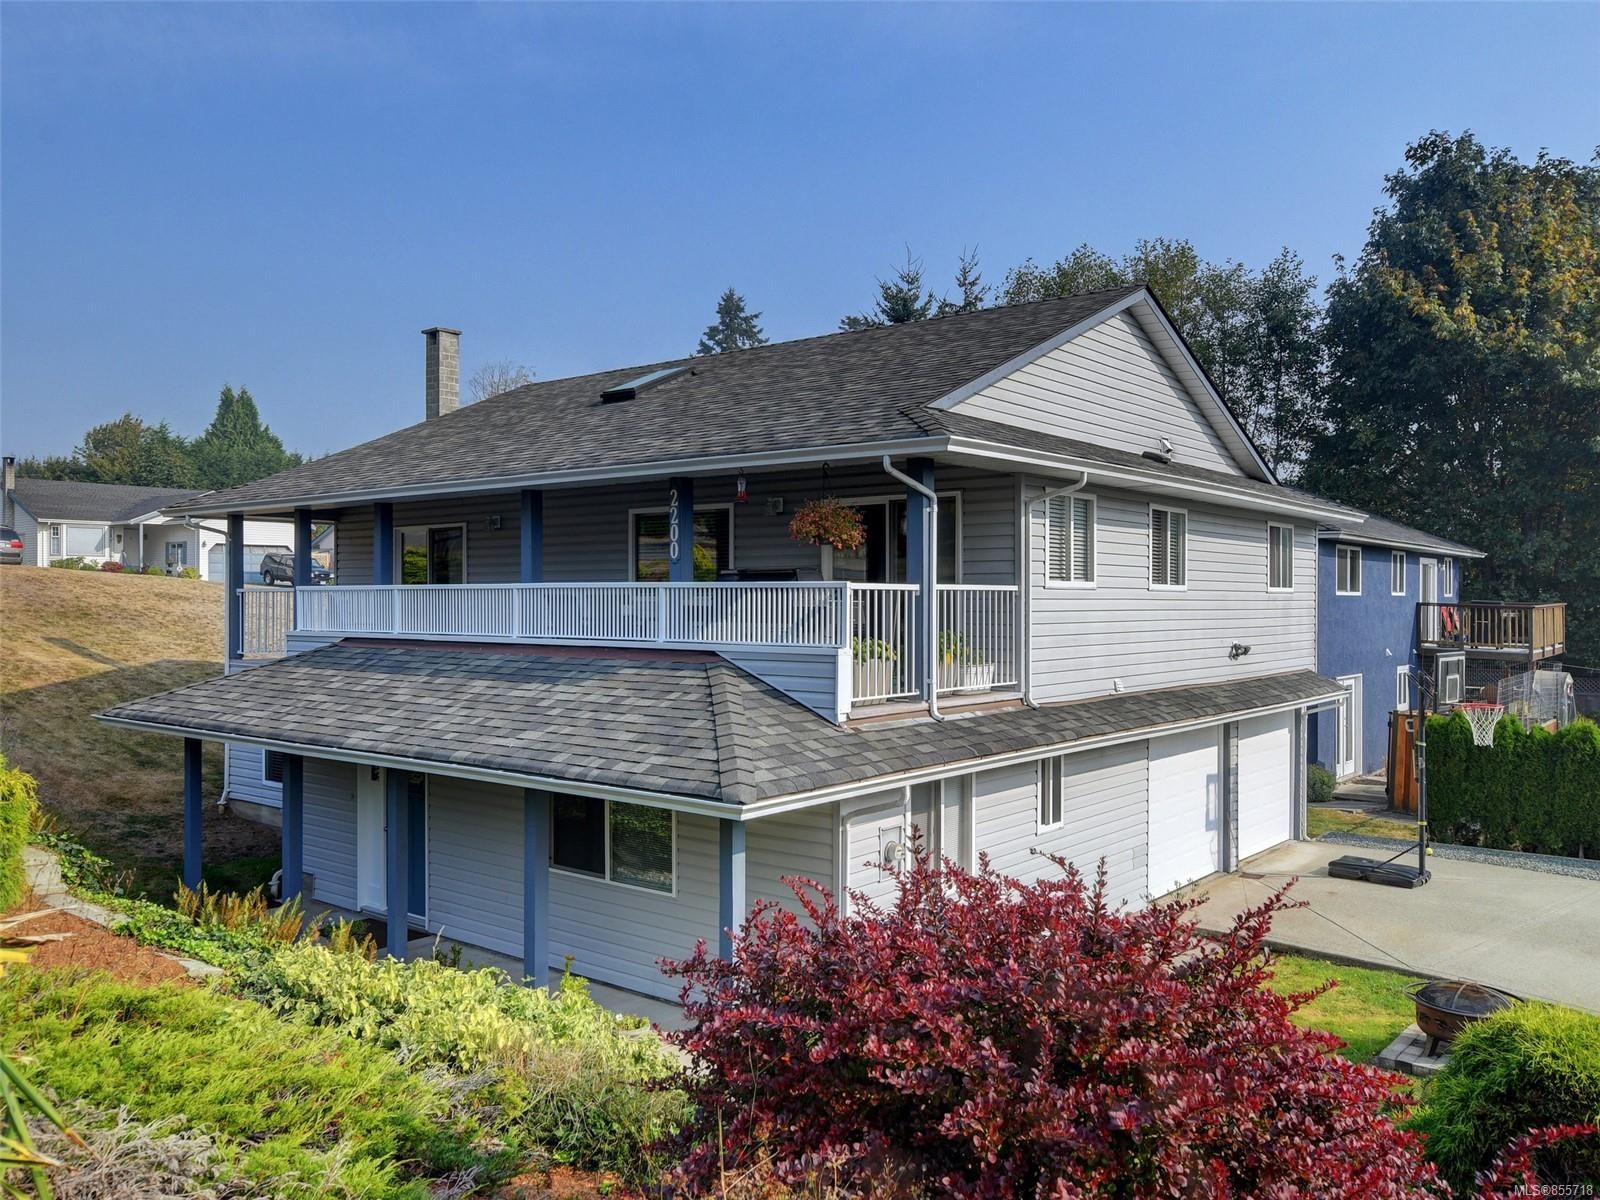 Main Photo: 2200 Tara Pl in : Sk Broomhill House for sale (Sooke)  : MLS®# 855718